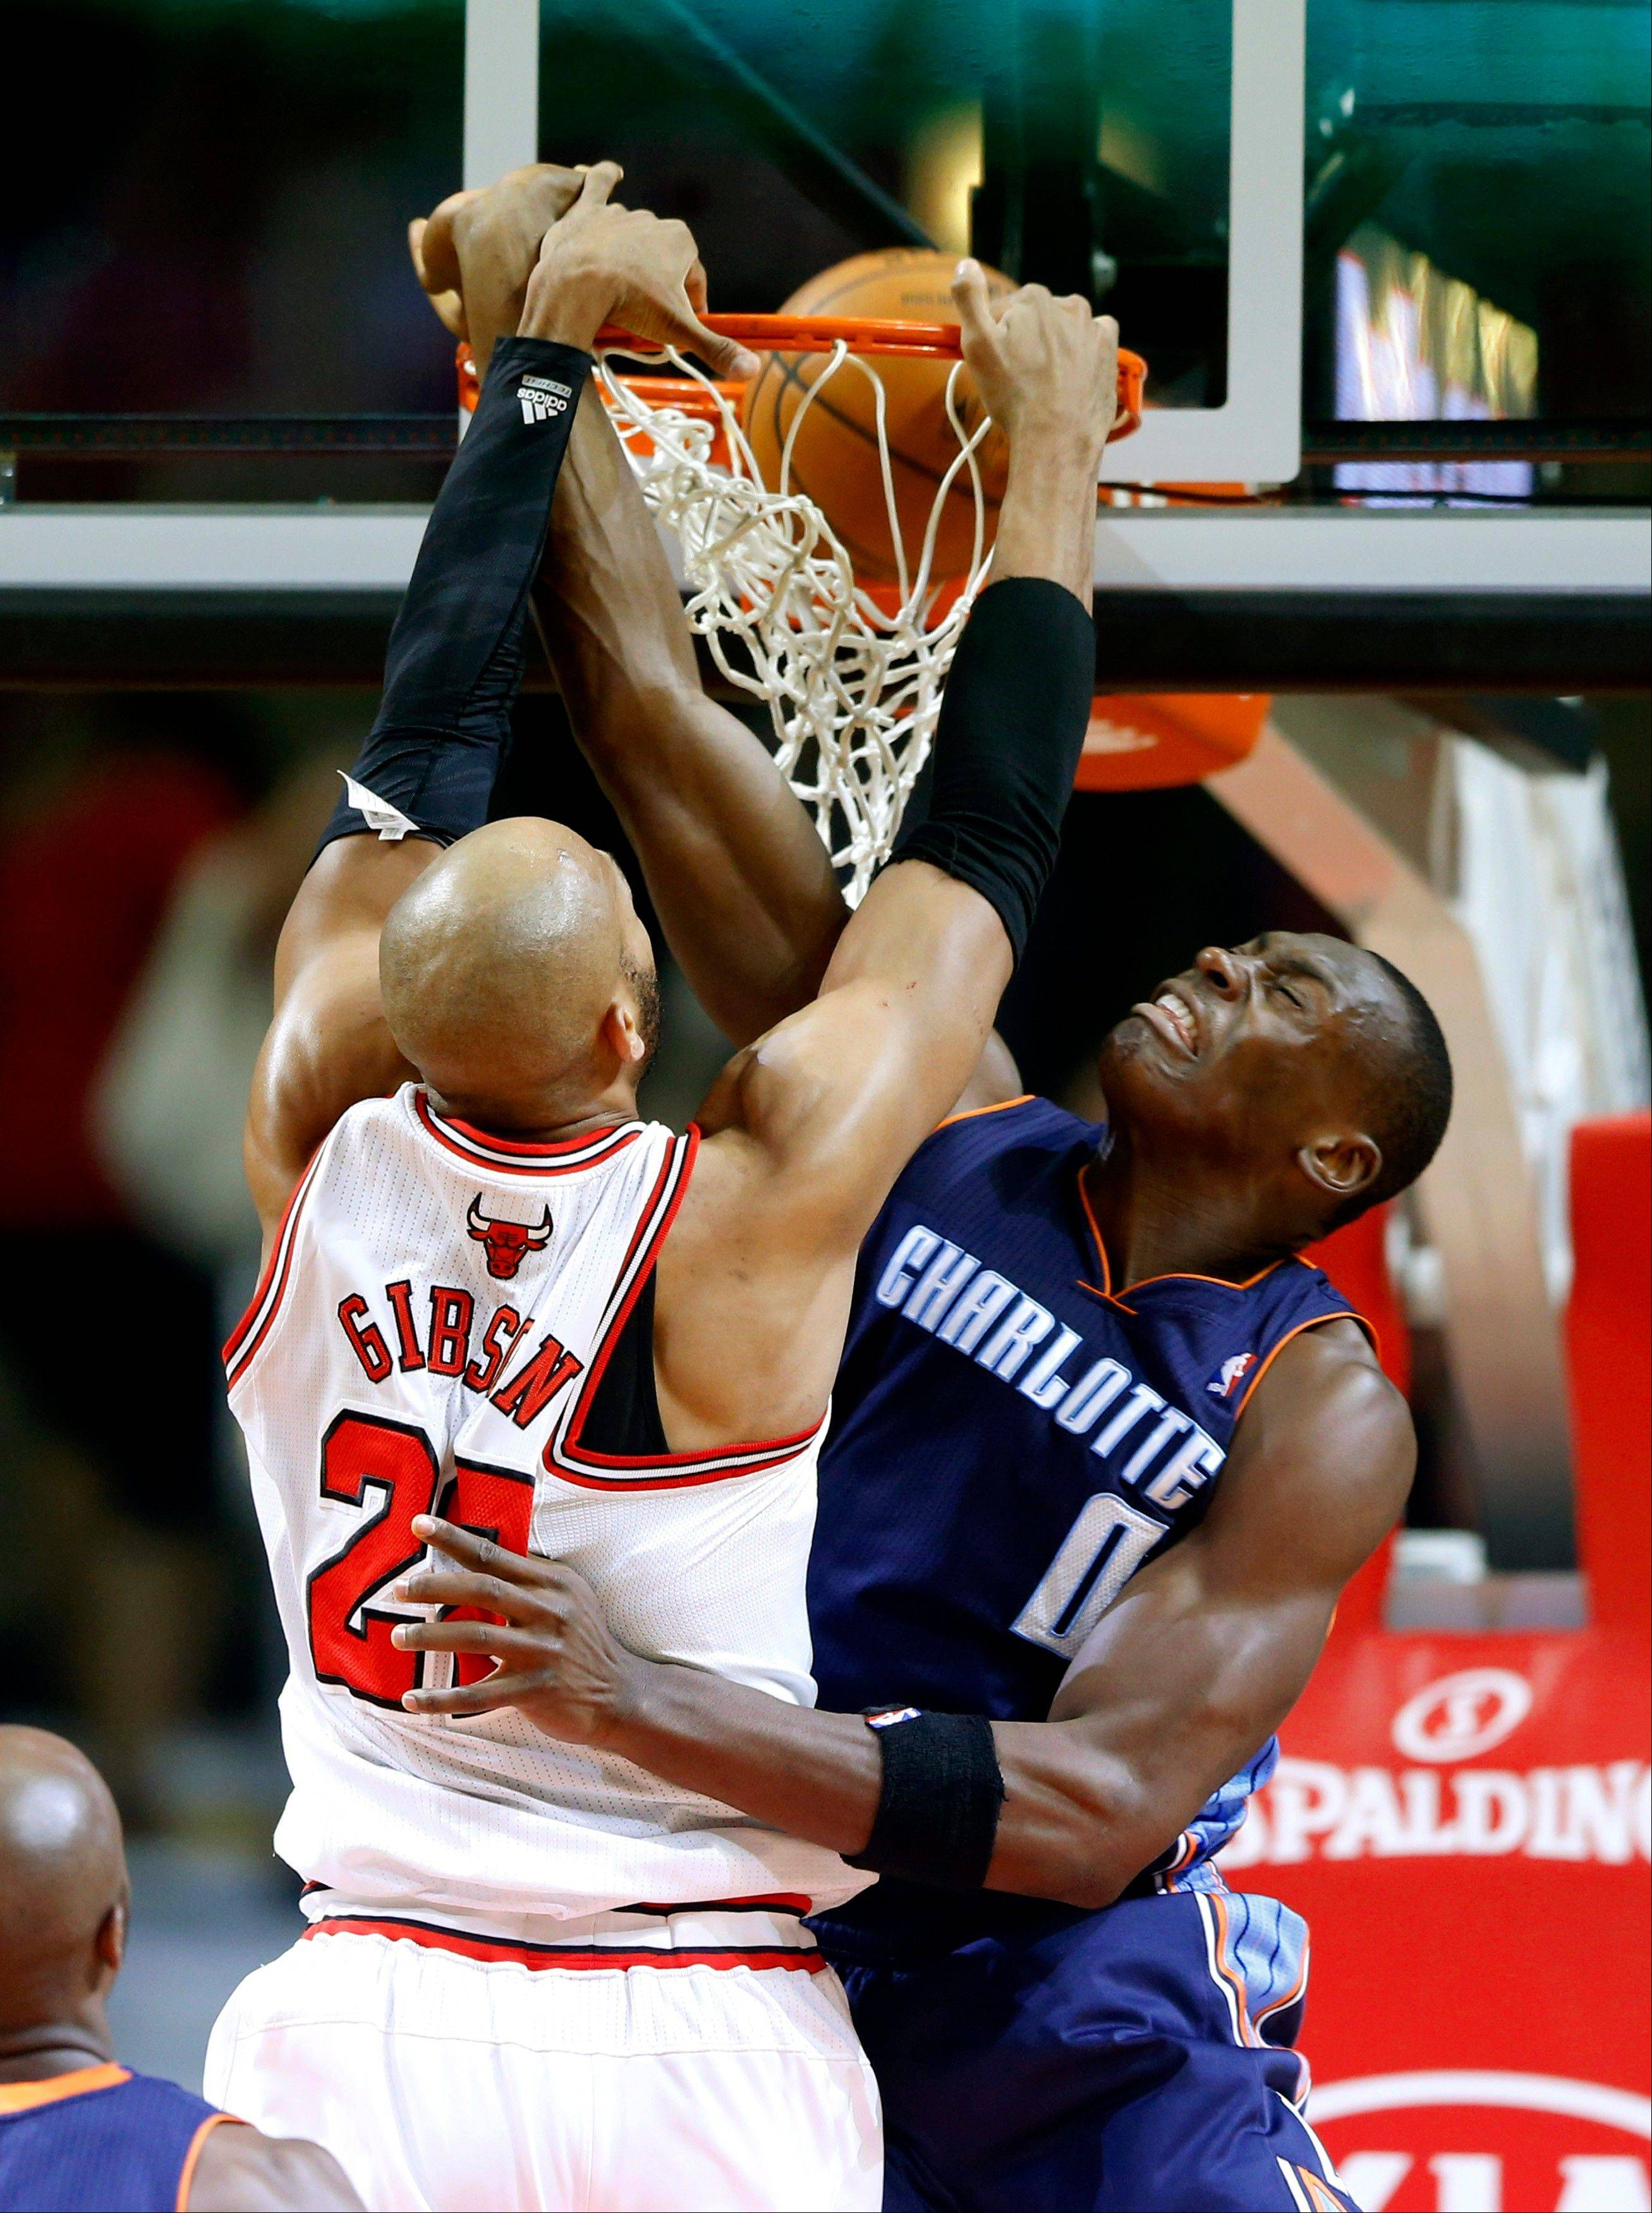 The Bulls' Taj Gibson delivers a power slam against the Bobcats' Bismack Biyombo on Saturday at the United Center.